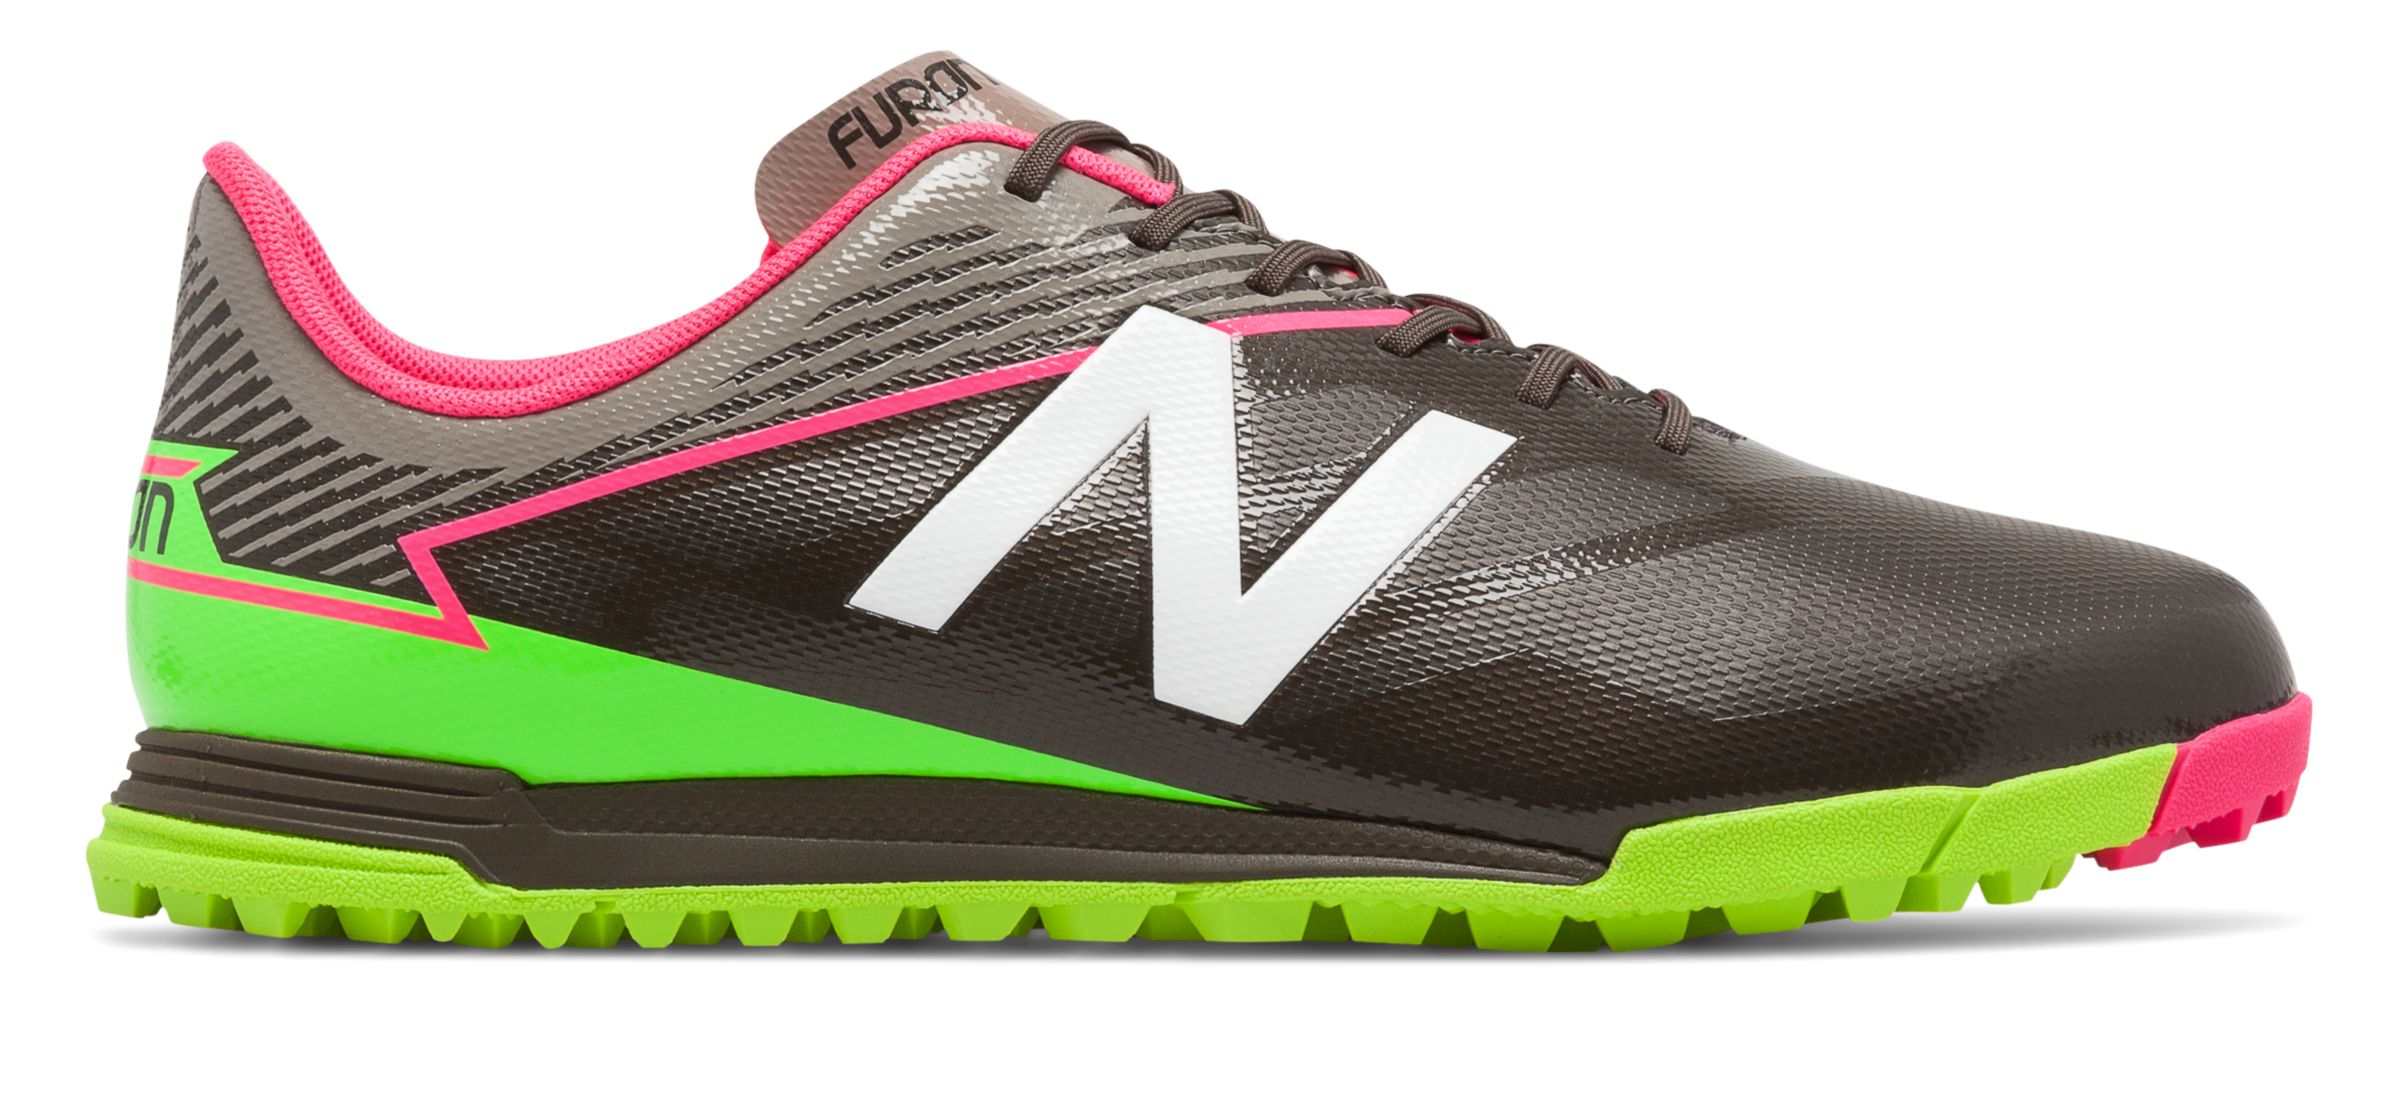 NB Furon 3.0 Dispatch TF, Military Dark Triumph with Alpha Pink & Energy Lime